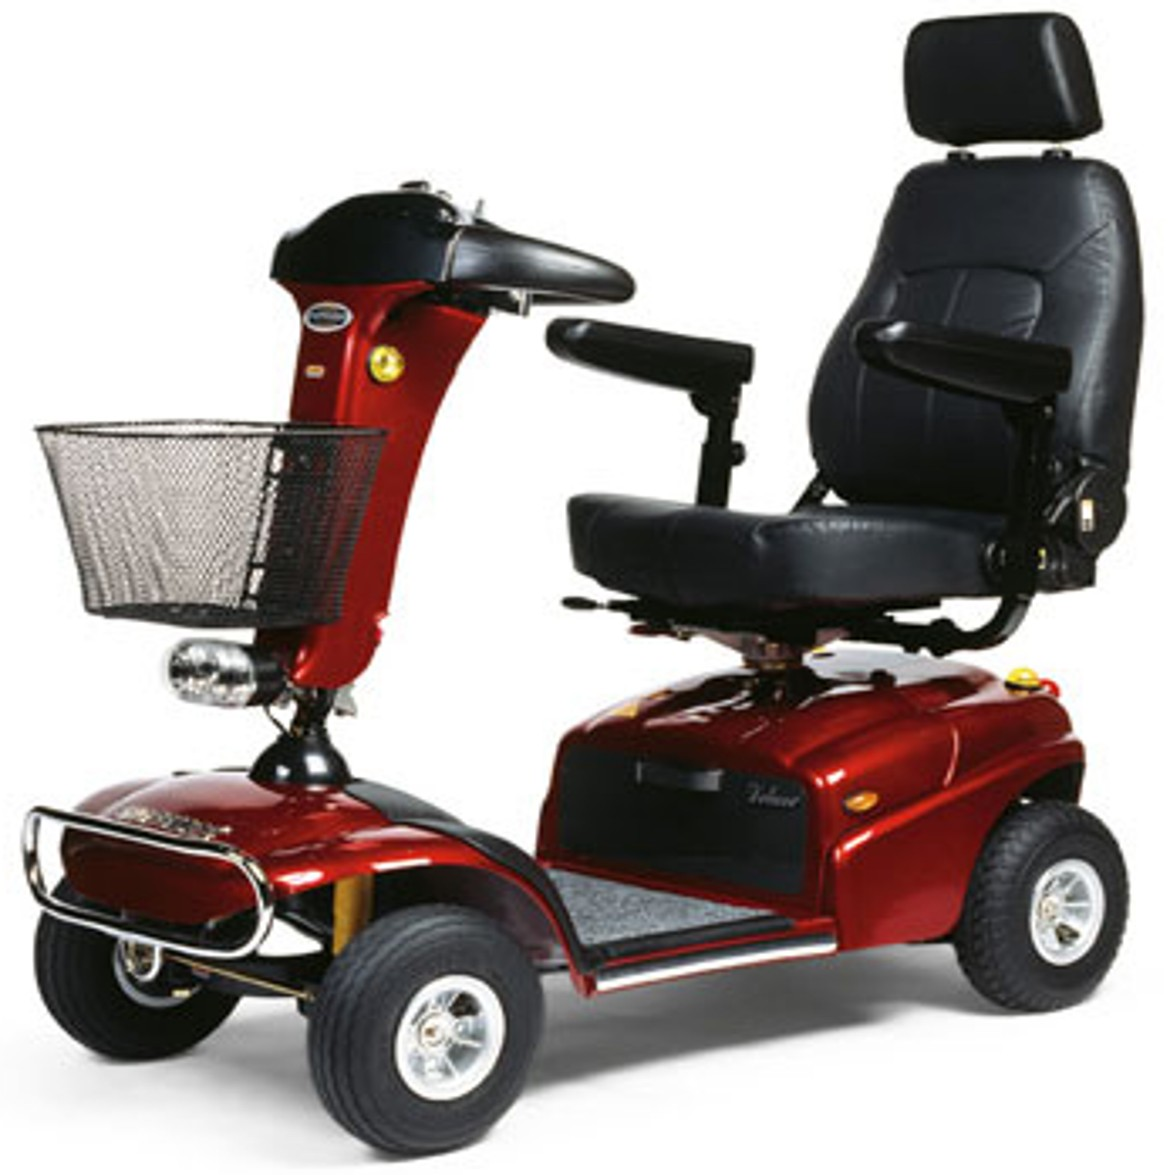 Power Chairs And Scooters Shoprider Mobility Scooters Shoprider Explorer 888sln